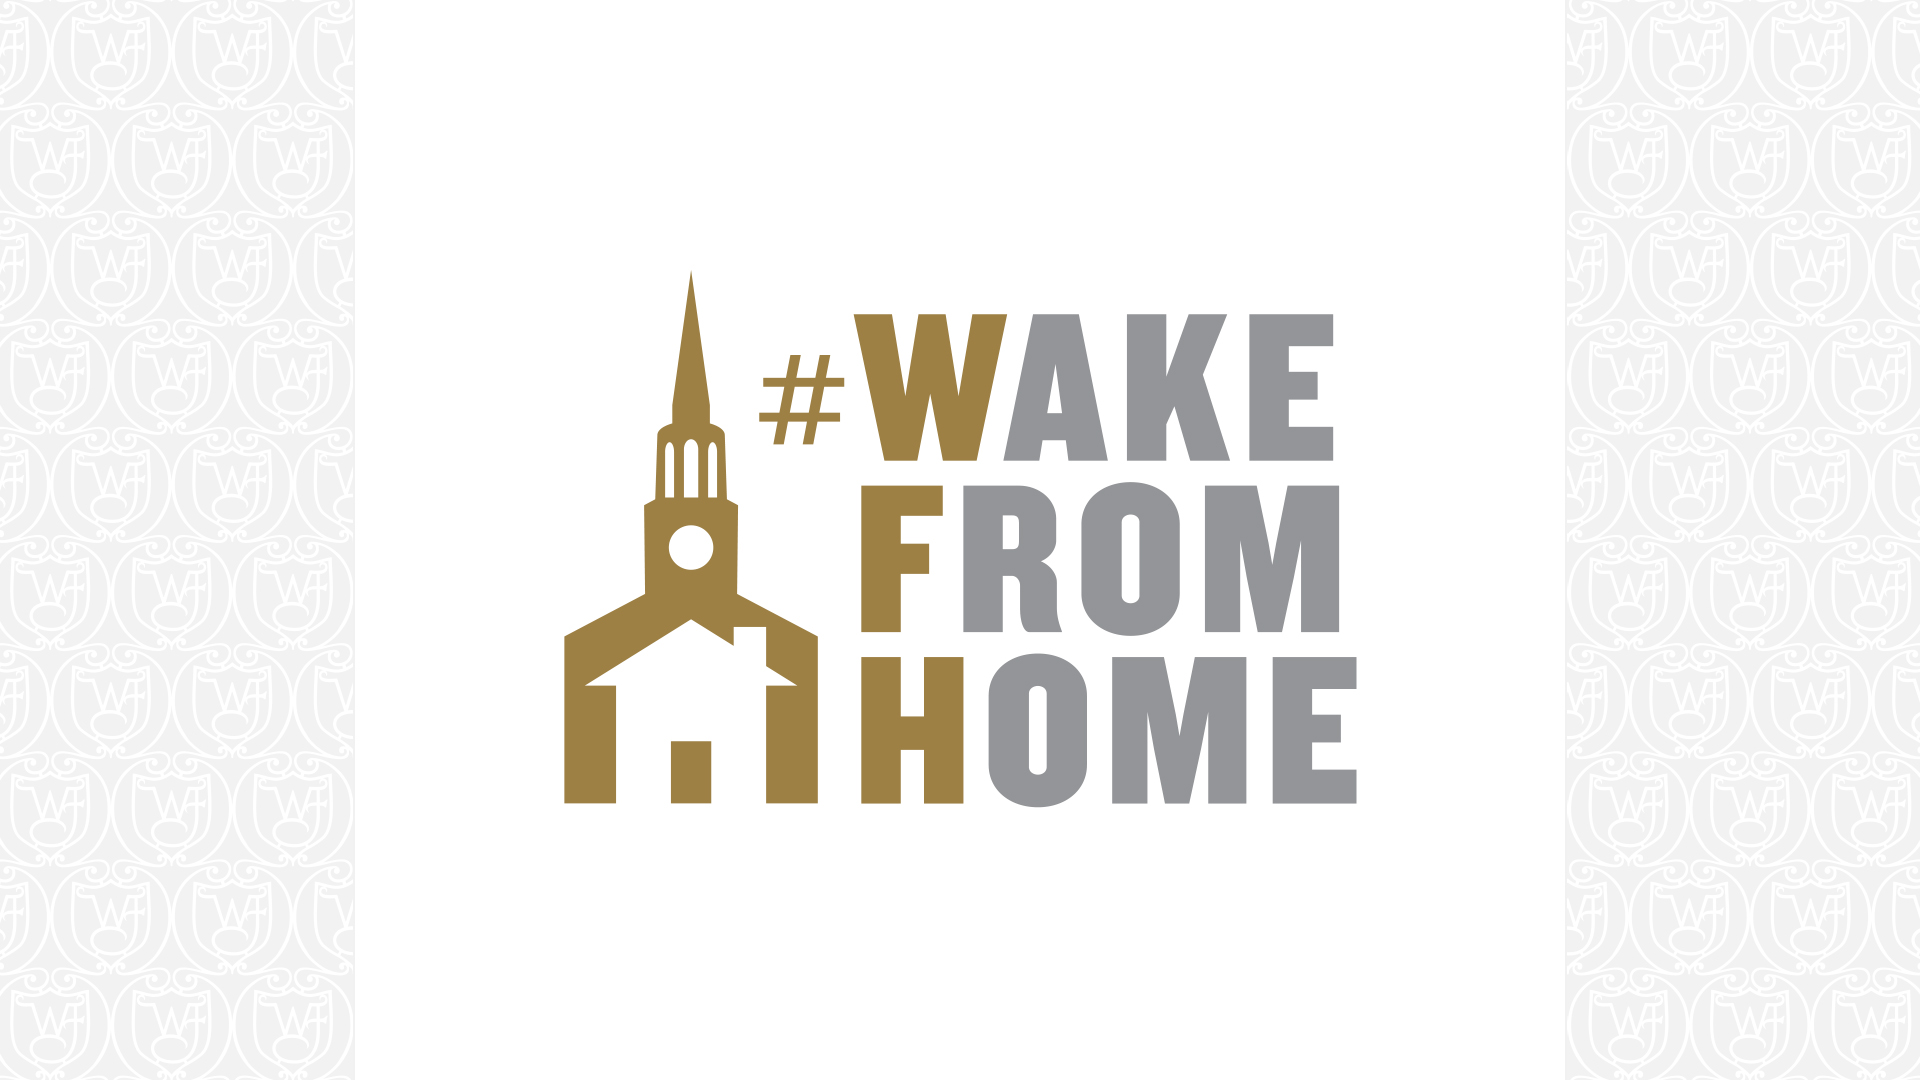 WakeFromHome wallpaper